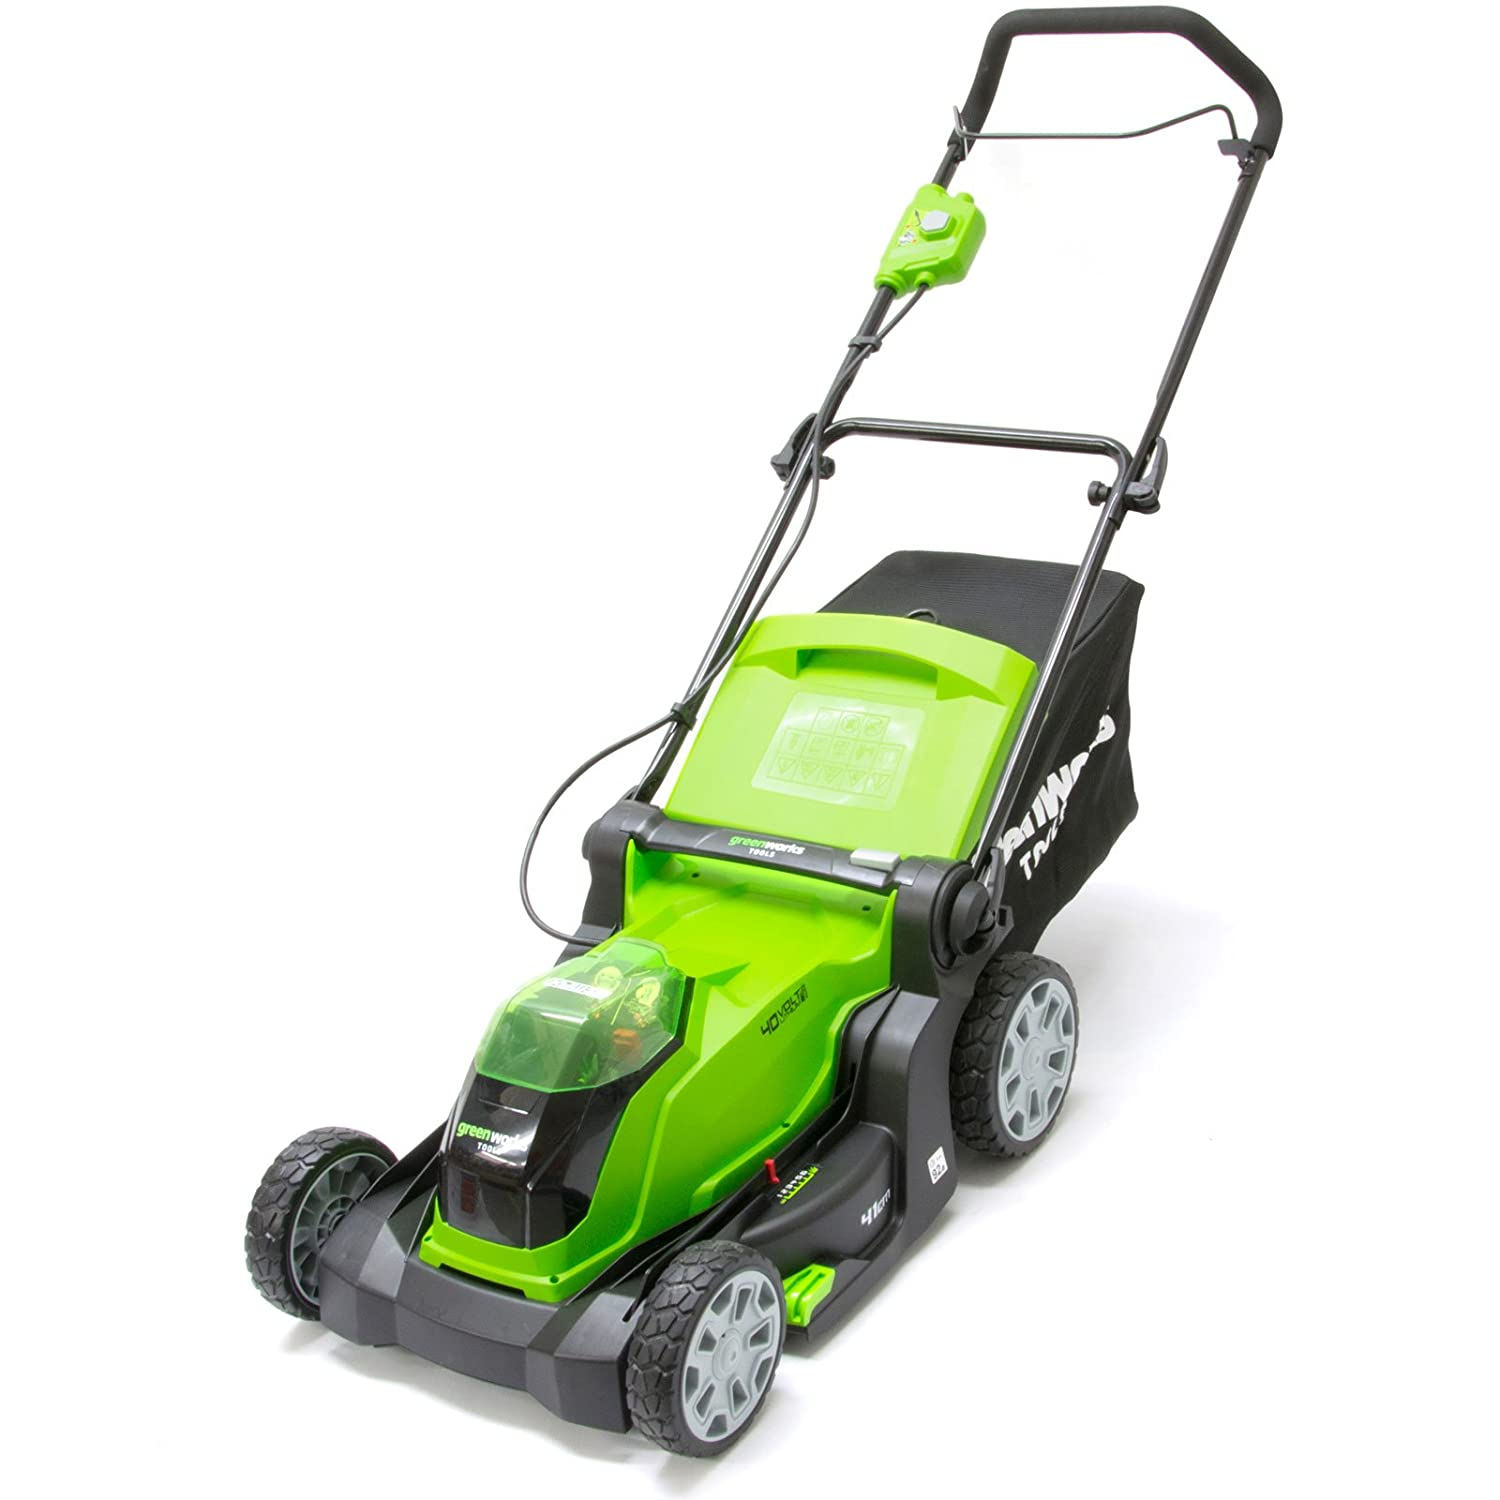 Greenworks 642504707 Cortacésped Inalámbrico, 40 V, Verde: Amazon ...